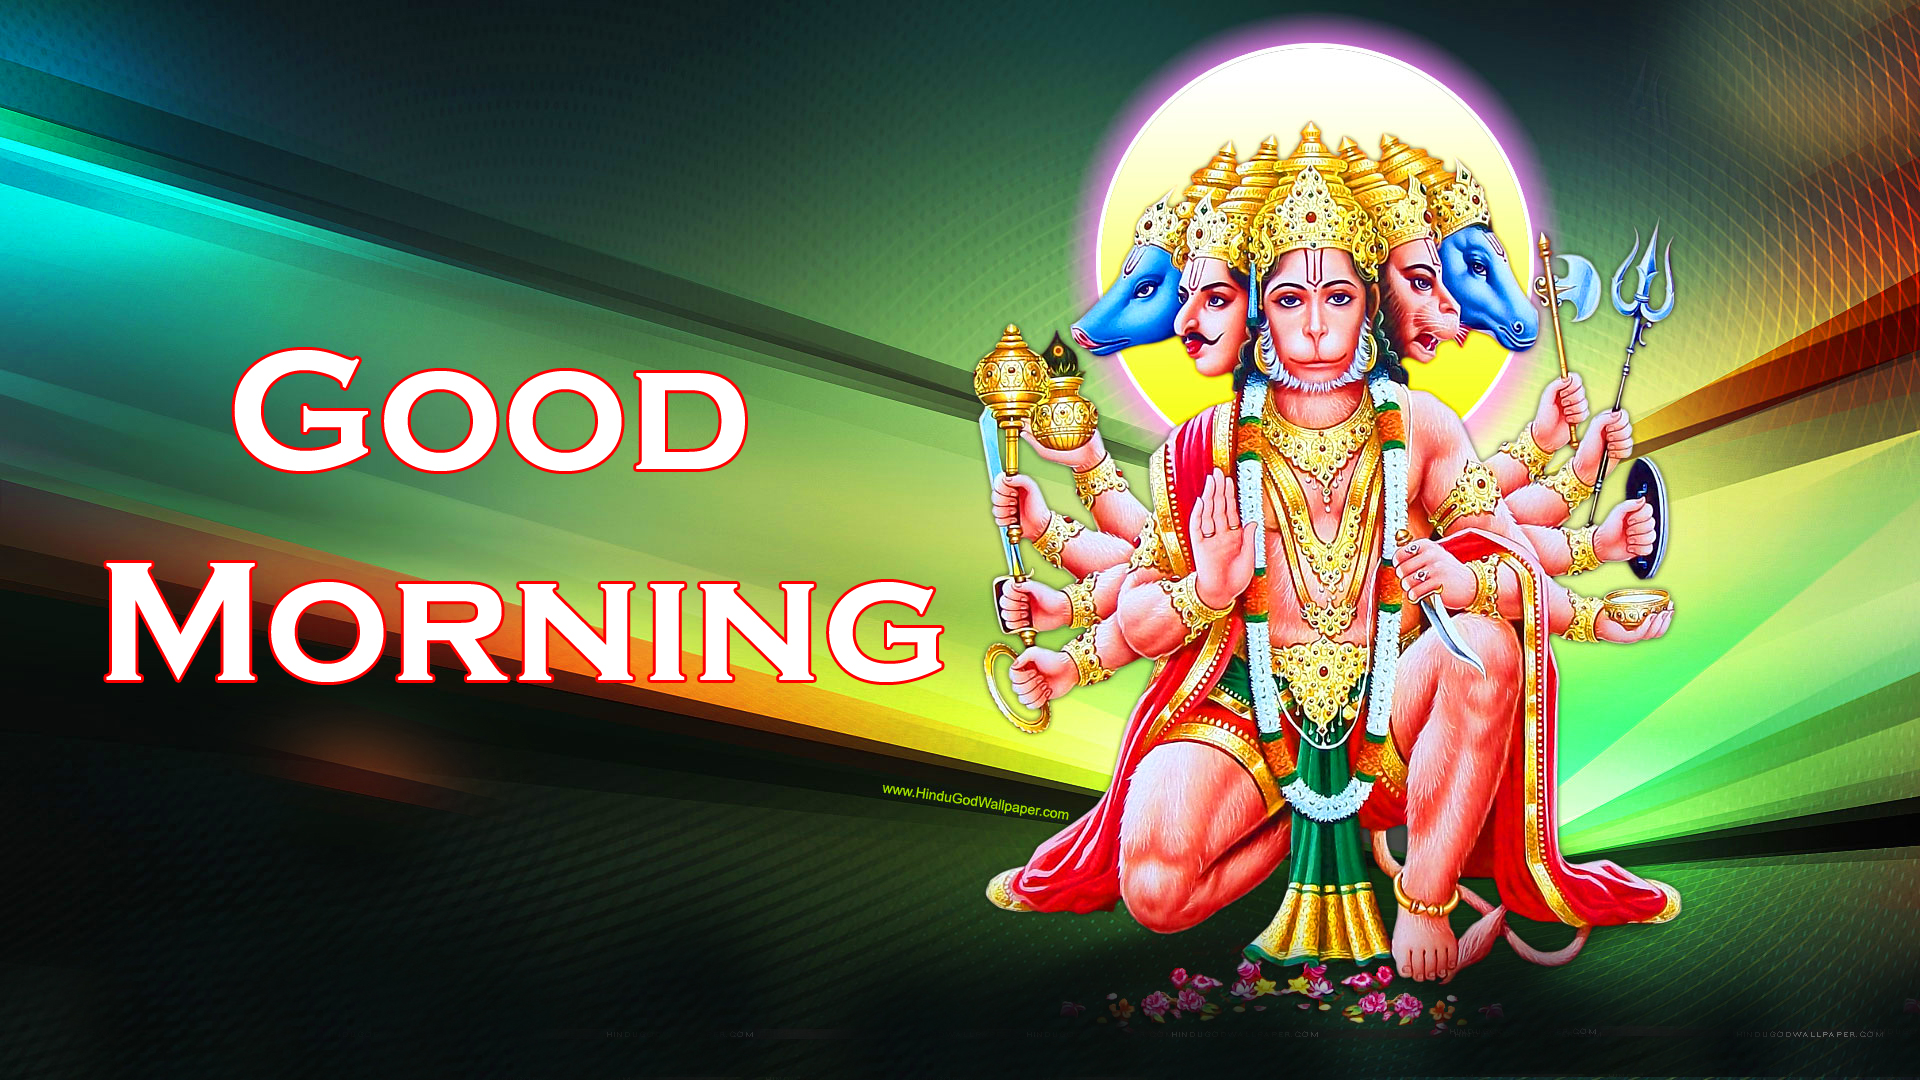 Hanuman Ji Good Morning Images Wallpaper Free Download